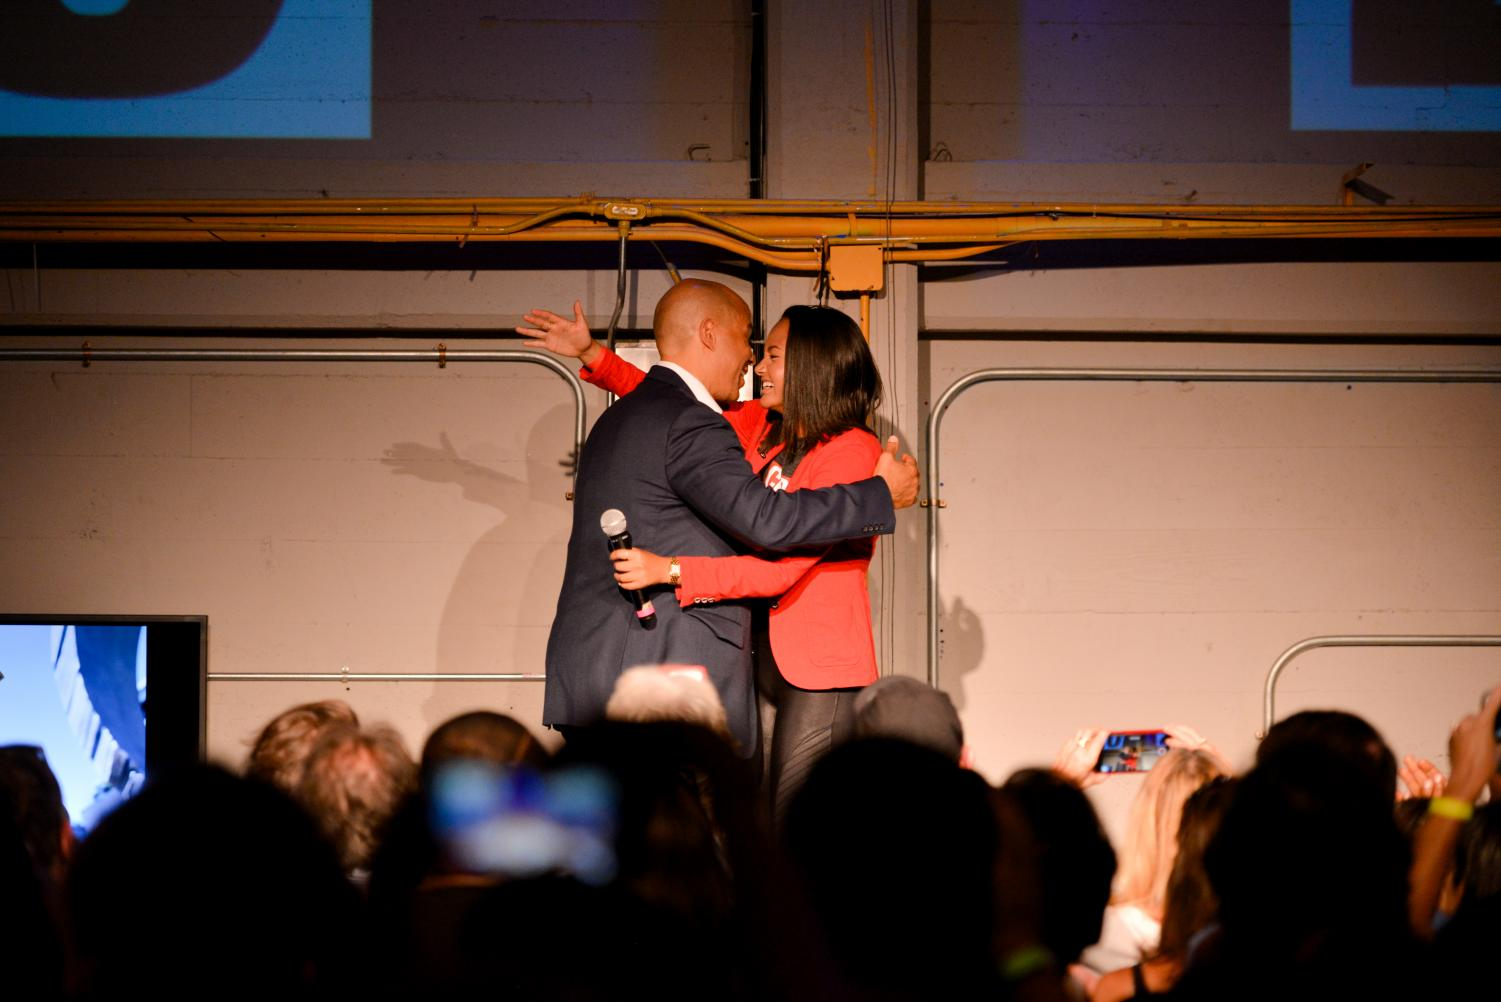 Democratic+presidential+hopeful+Sen.+Cory+Booker+hugs+supporter+Sydney+Brown%2C+a+college+freshman+from+Mill+Valley%2C+after+Browns+introductory+speech.+Brown+and+Booker+addressed+a+crowd+of+over+400+at+Bookers+happy+hour+fundraising+event+yesterday.